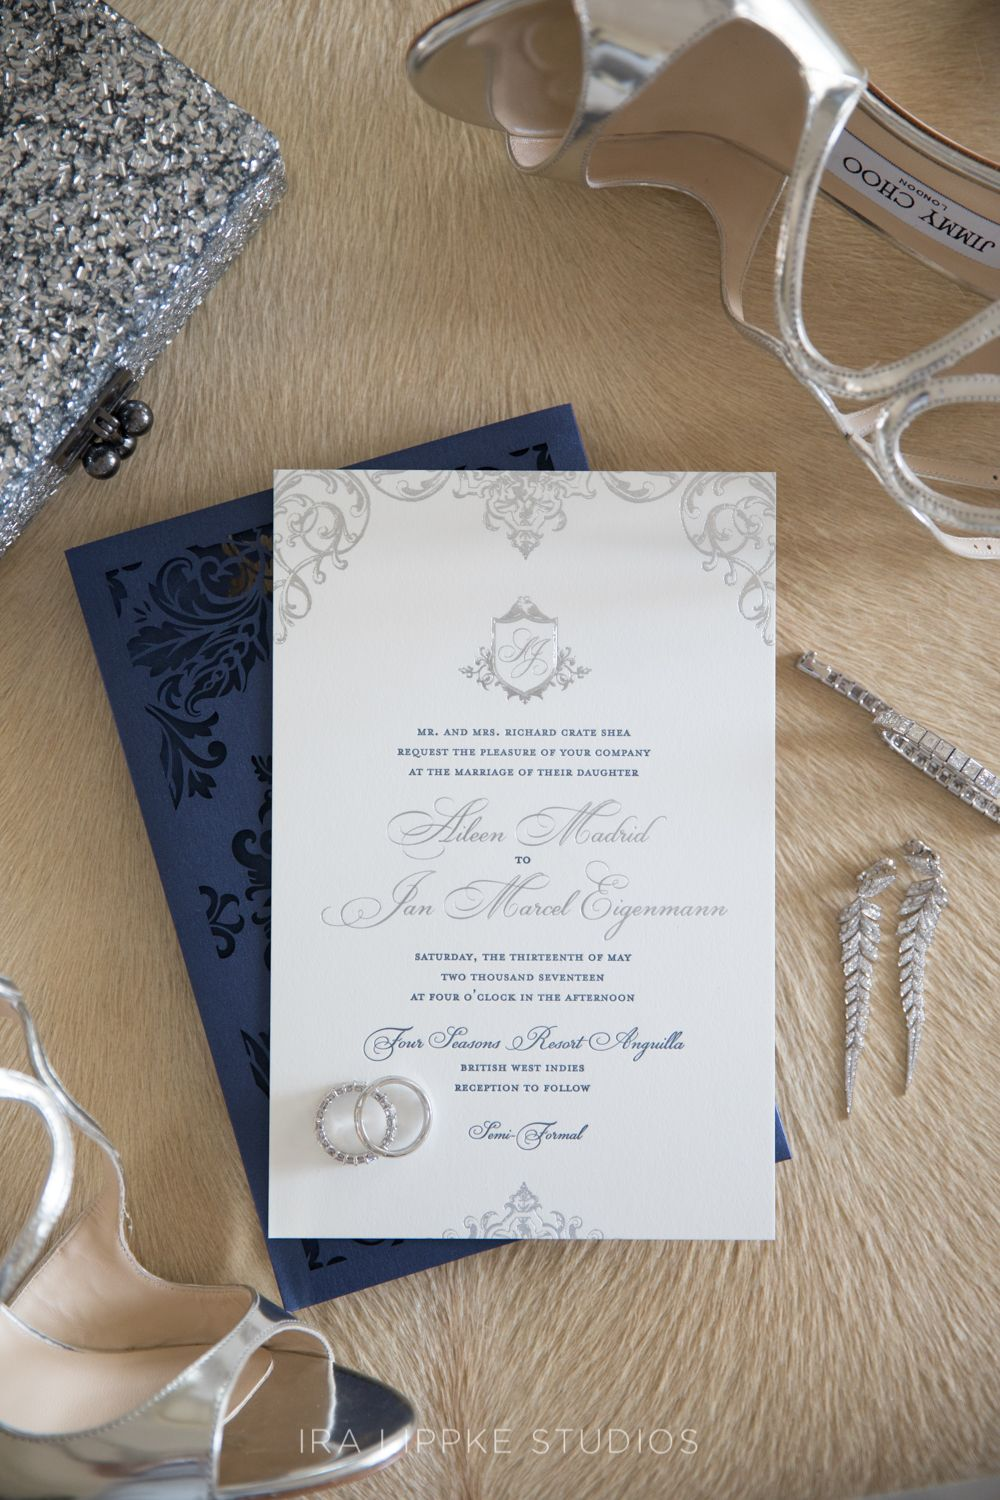 Navy blue and silver laser cut wedding invitation design for a ...